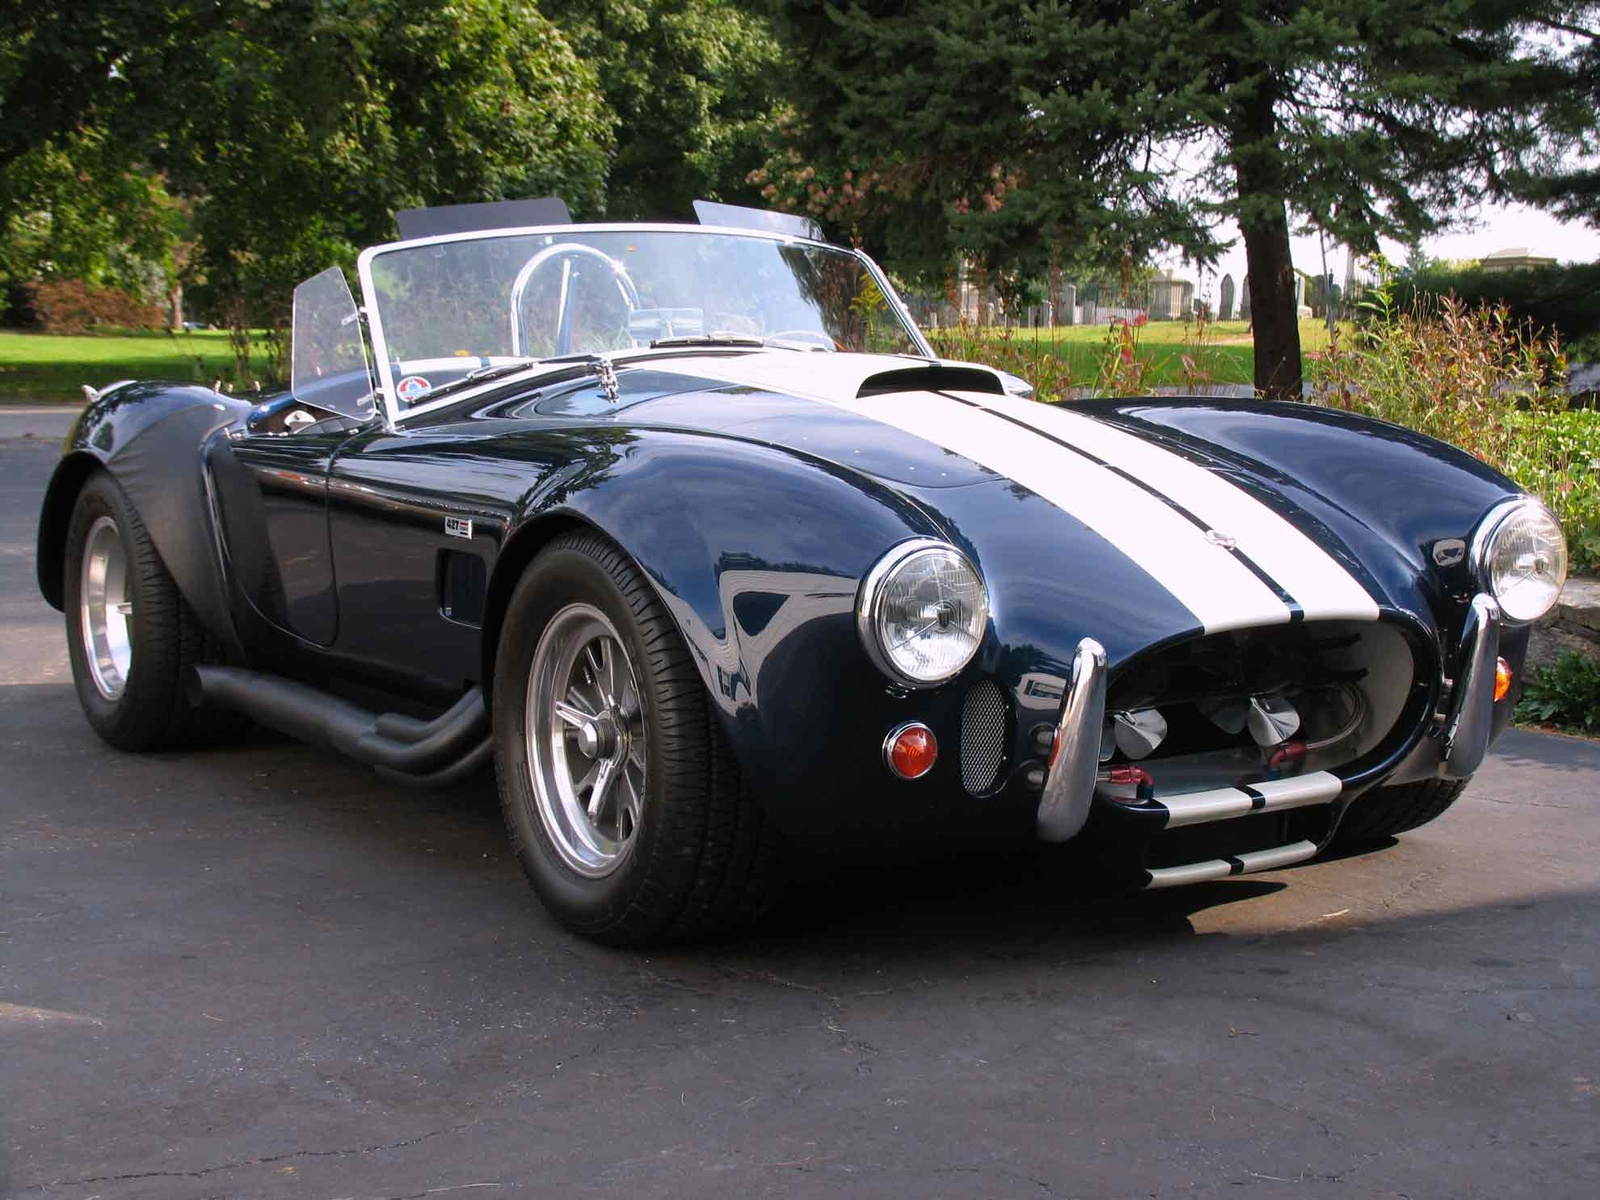 65 Cobra Kit Car >> 1968 Shelby Cobra - Pictures - CarGurus